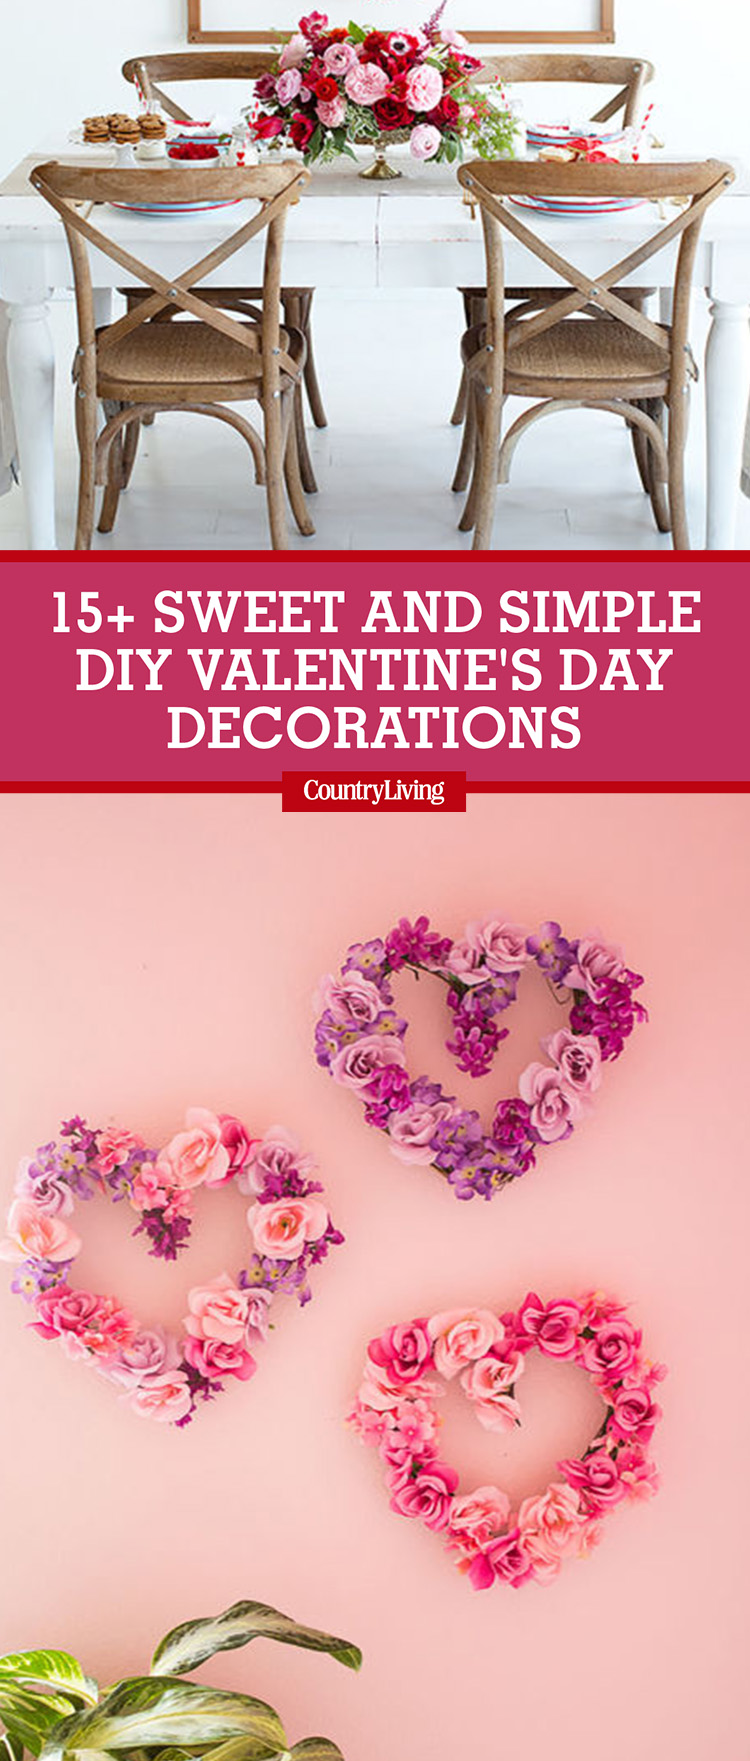 18 sweet and simple diy valentines day decorations valentine decor - Homemade Valentine Decorations